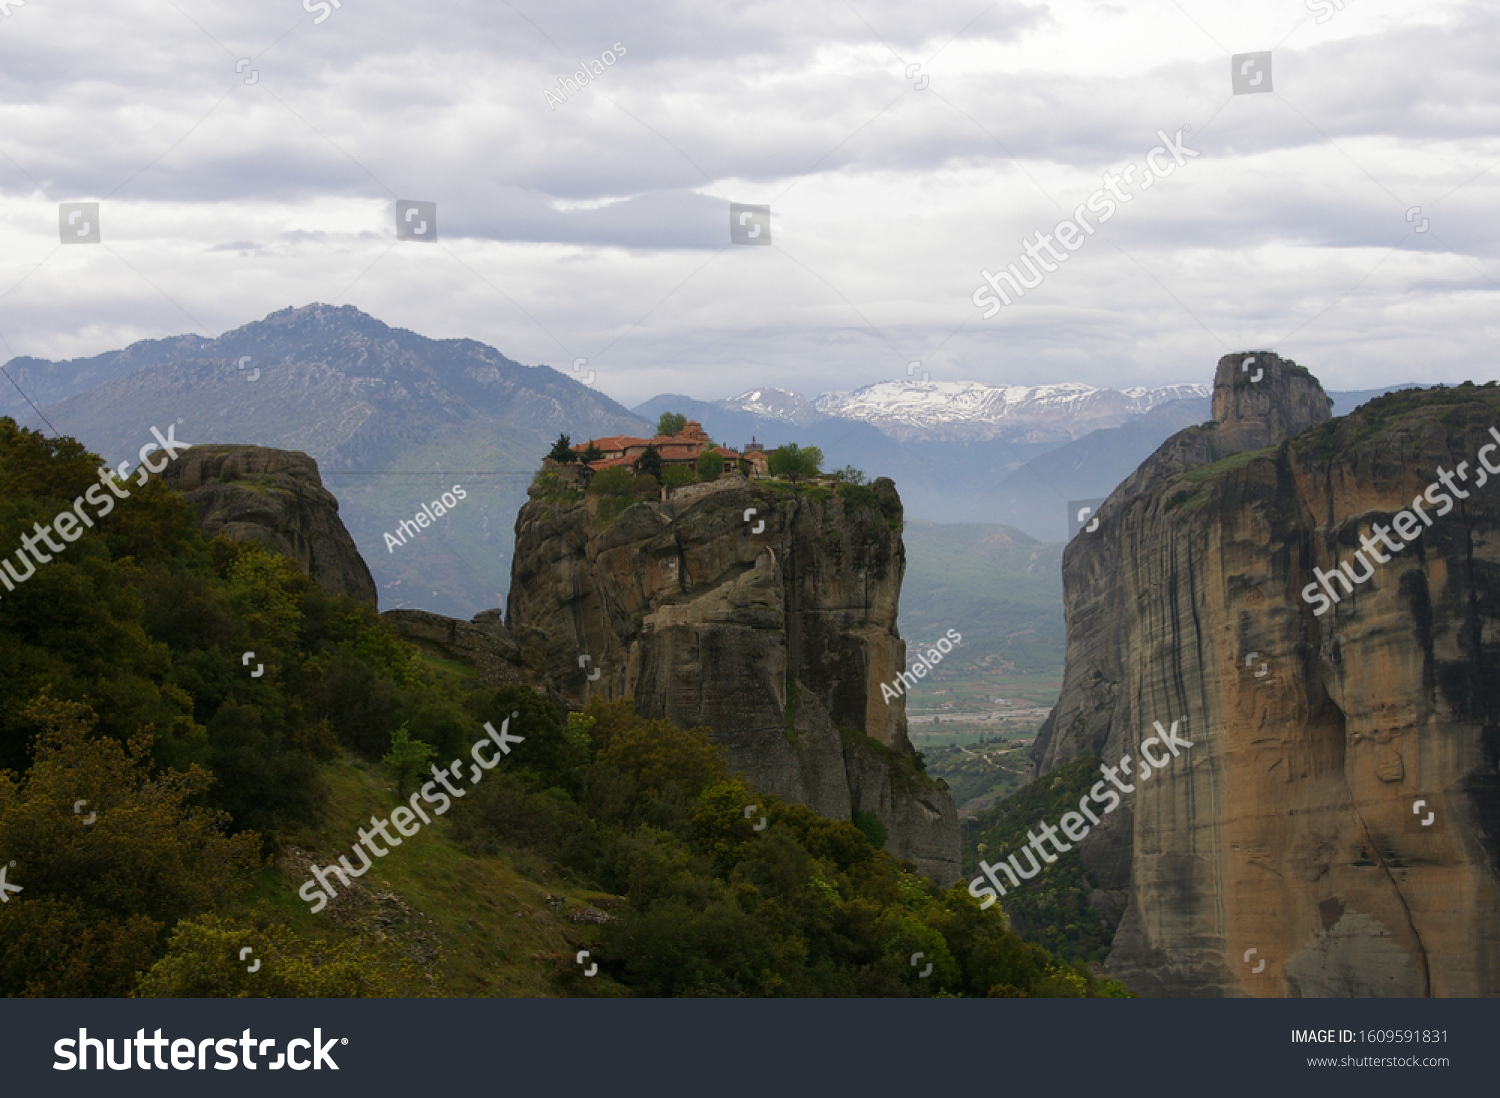 stock-photo-spring-is-coming-at-meteora-